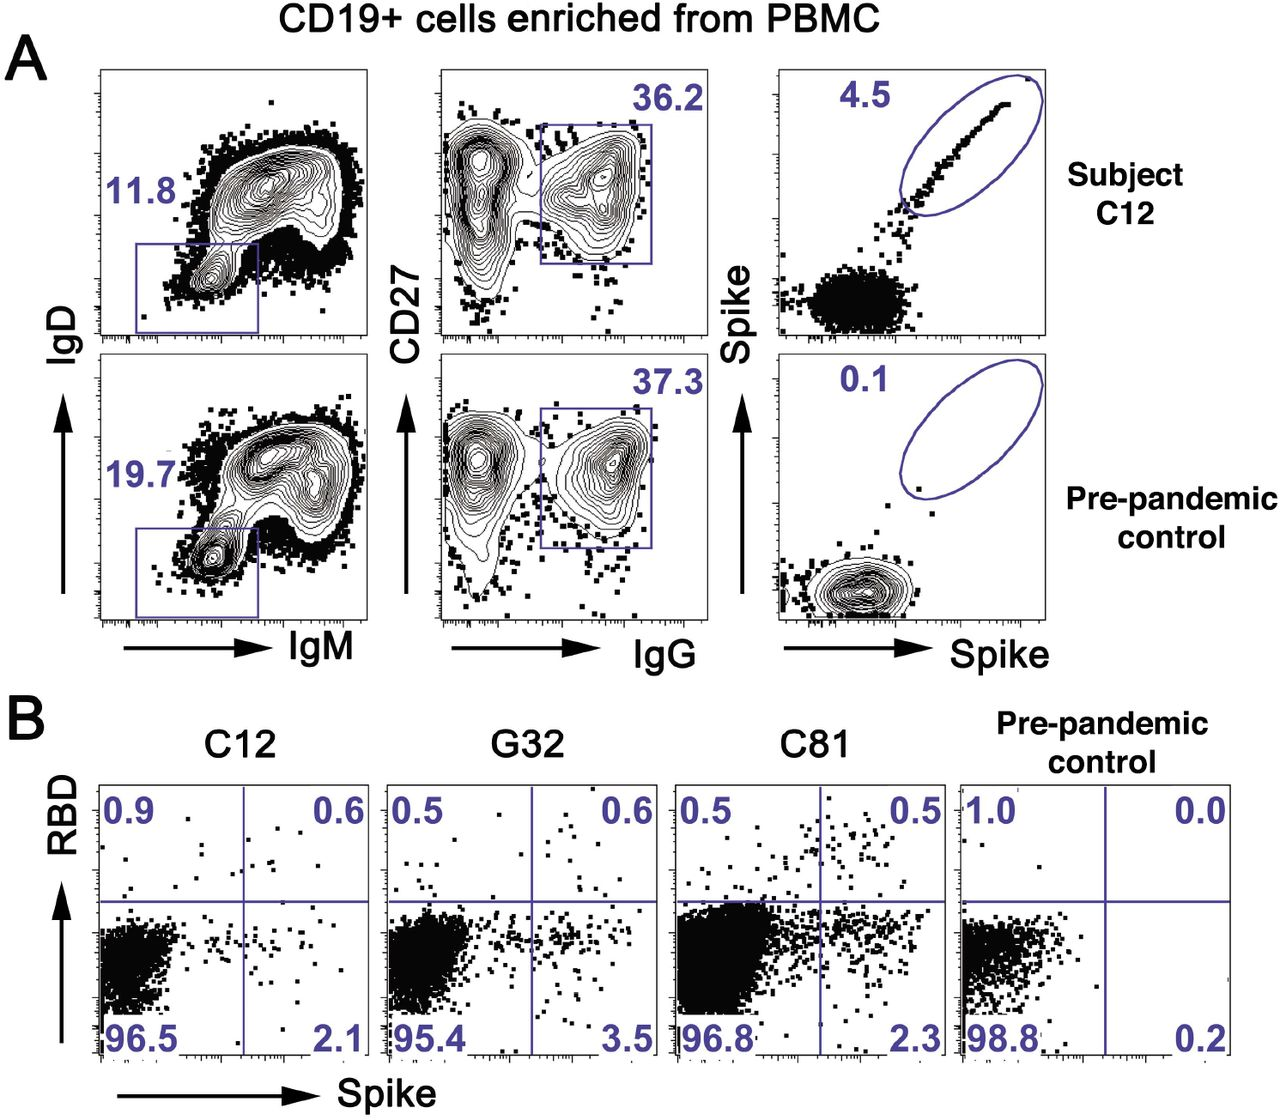 Sorting strategy for SARS-CoV-2 specific memory B cells. ( A ) Representative flow cytometry plots showing CD19 + , CD27 + , SARS-CoV-2 spike-binding B cells from a convalescent subject (C12, top row) and a pre-pandemic control (bottom row). PBMCs were pre-enriched with CD19 magnetic beads then gated on live IgD - IgM-IgG + CD27 + and finally on spike ( B ) Representative flow cytometry plots showing spike-positive, RBD-negative B cells for three convalescent subjects and a pre-pandemic control, sorted as in (A) except for the spike gate.